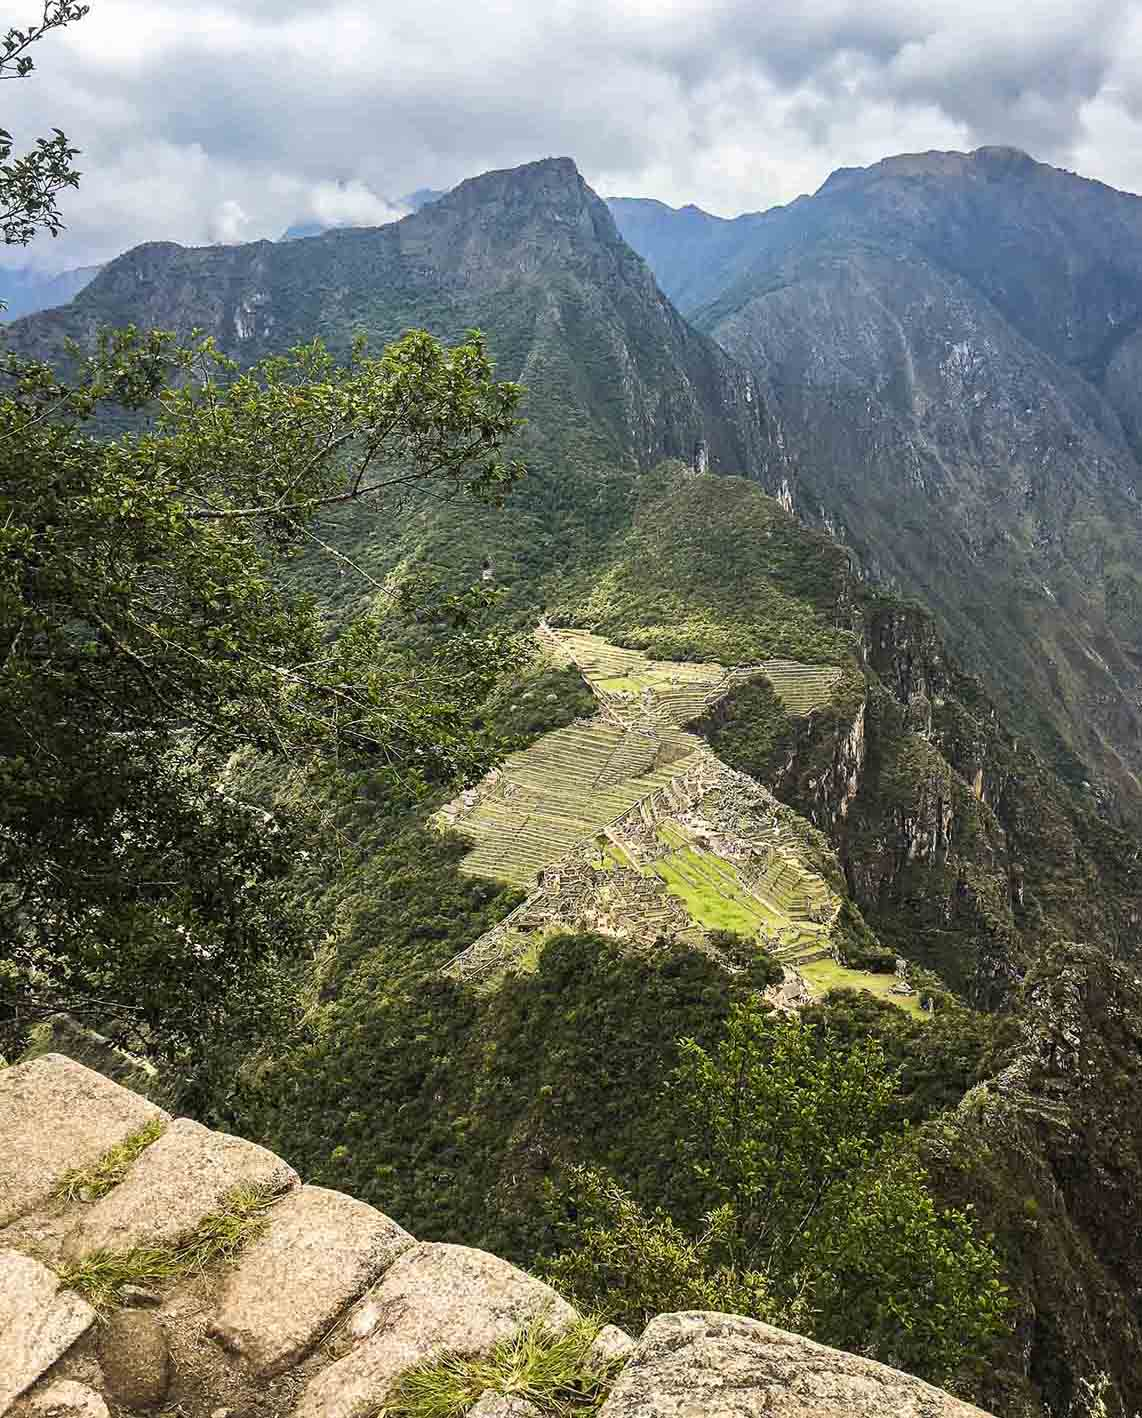 A view looking out at the tall mountain of Machu Picchu from the Hauyna Piccu summit on a cloudy day.